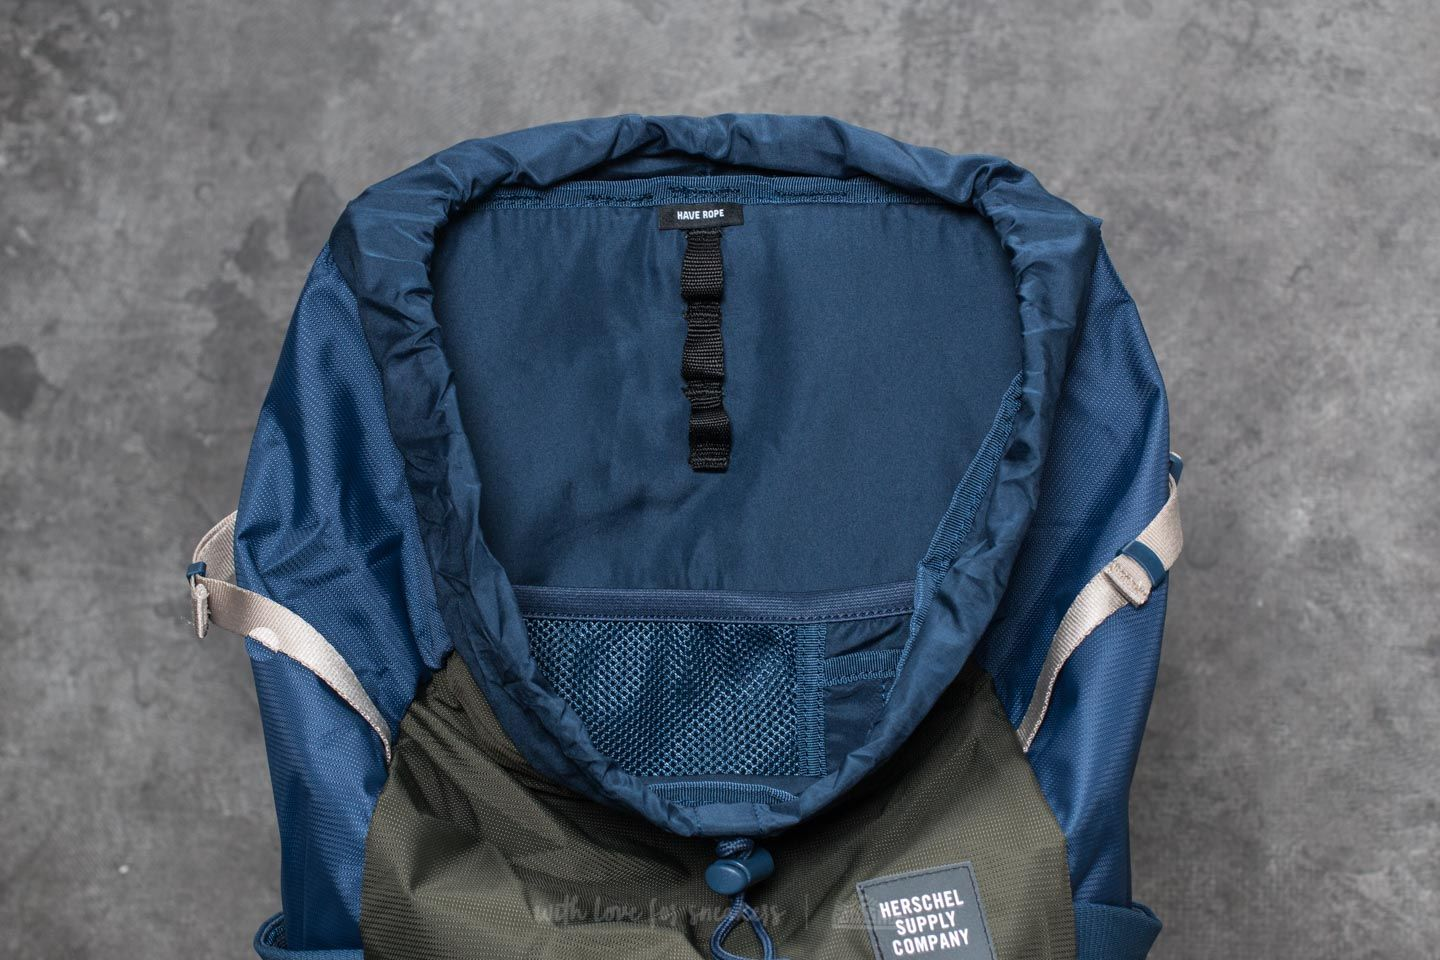 Herschel Supply Co. Barlow Large Backpack Peacoat  Forest Night au meilleur  prix 72 € d91a940403b98